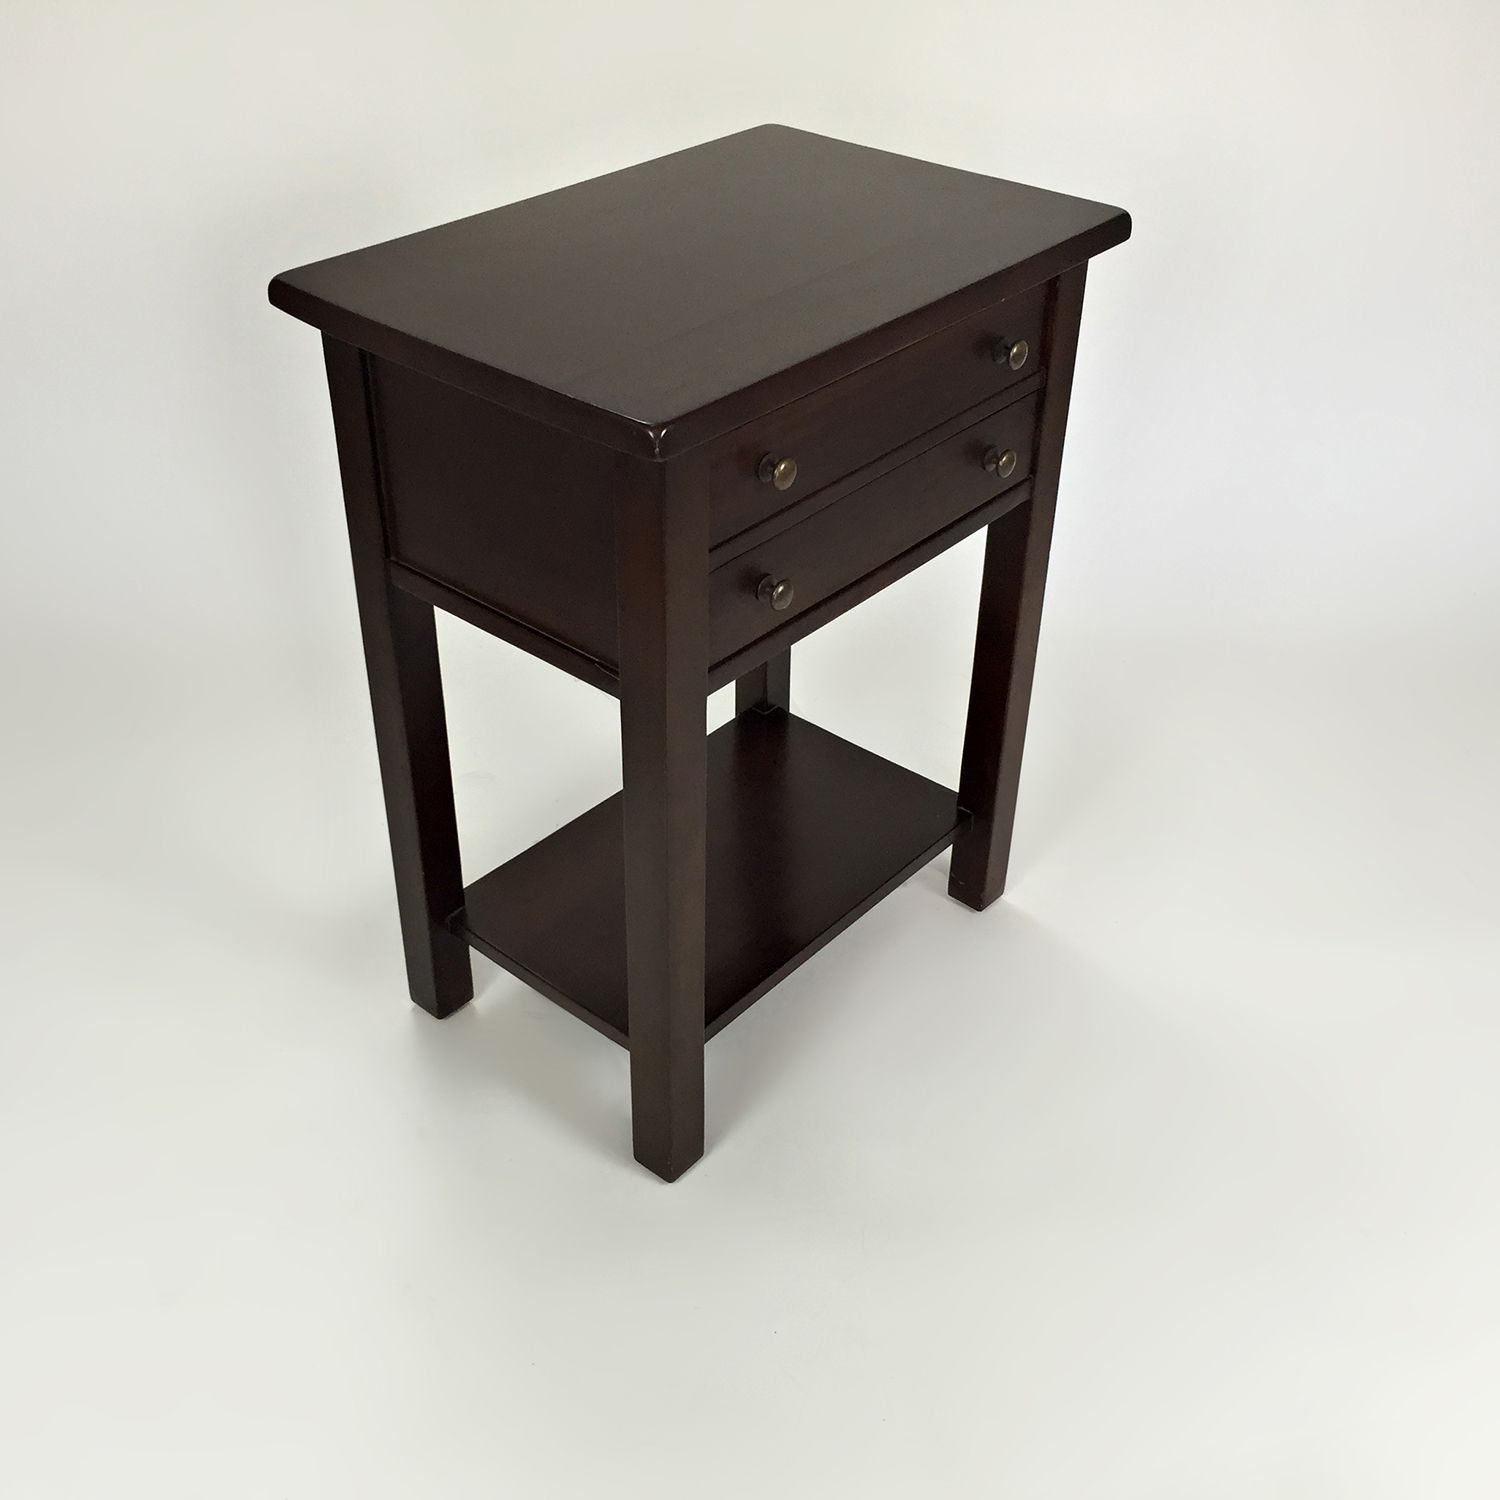 57 Off Homegoods Home Goods End Table Tables